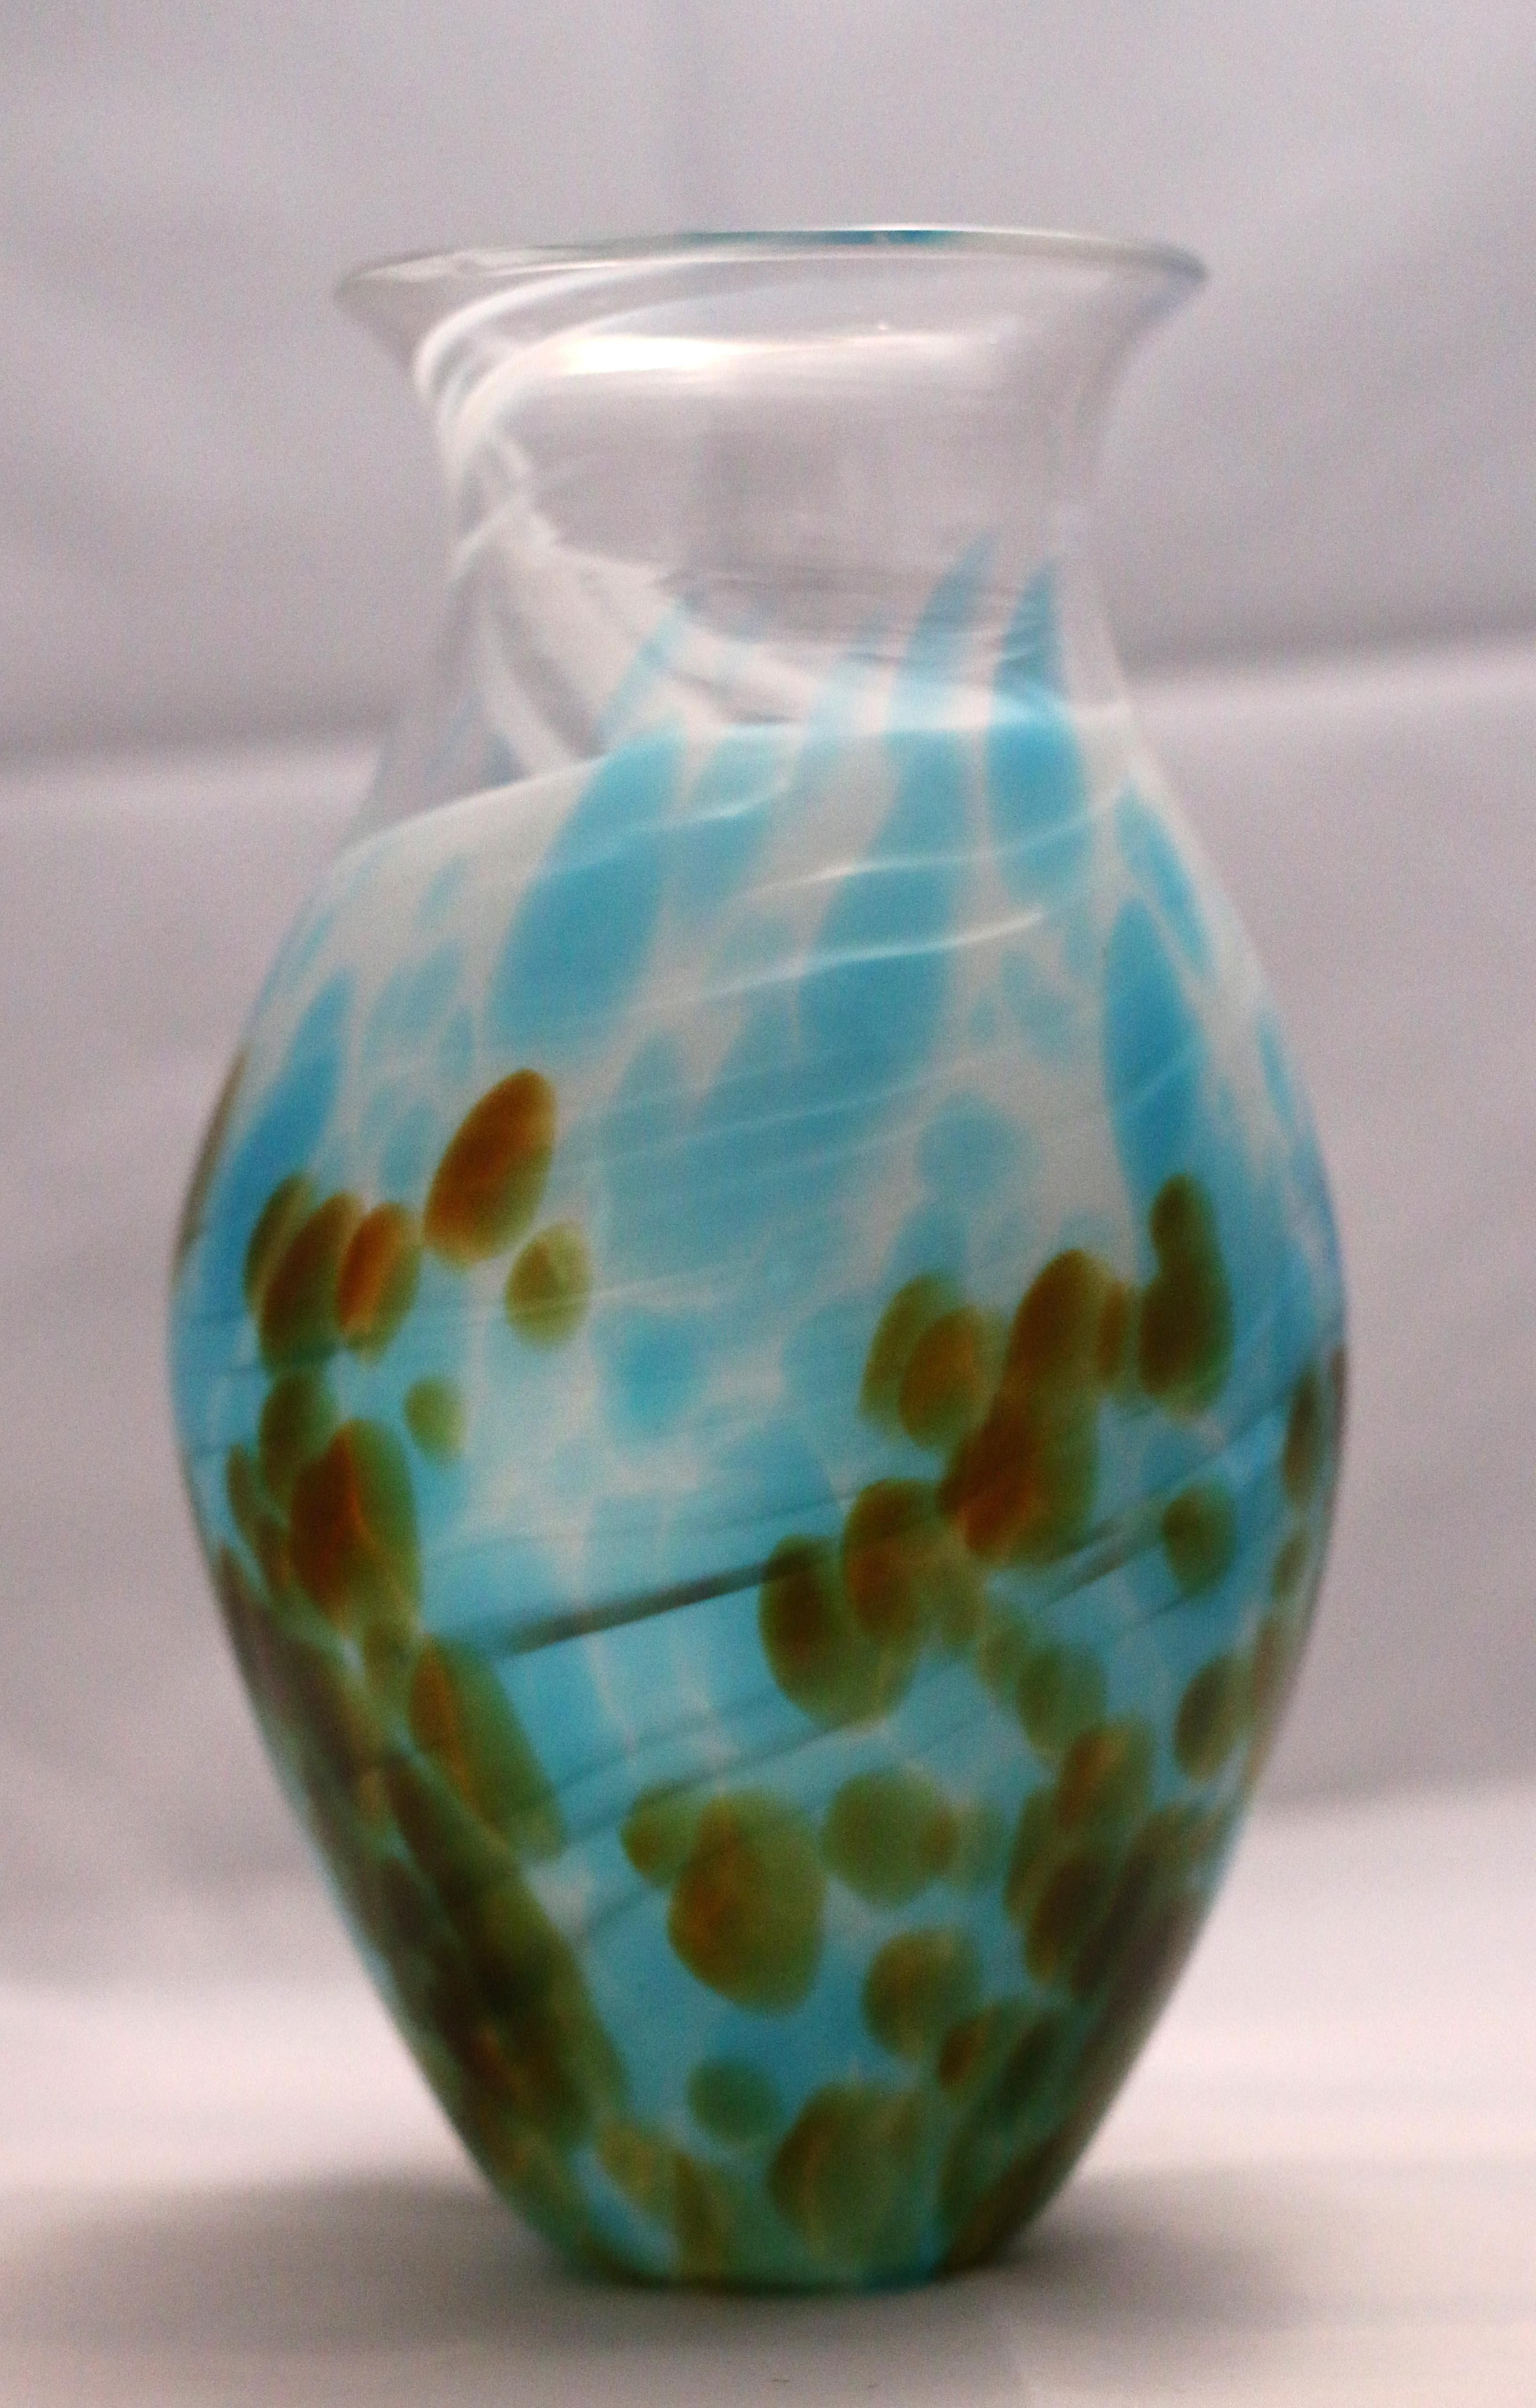 11 Cute Antique Cut Glass Vase Prices 2021 free download antique cut glass vase prices of 22 hobnail glass vase the weekly world with white milk glass vases bulk glass designs